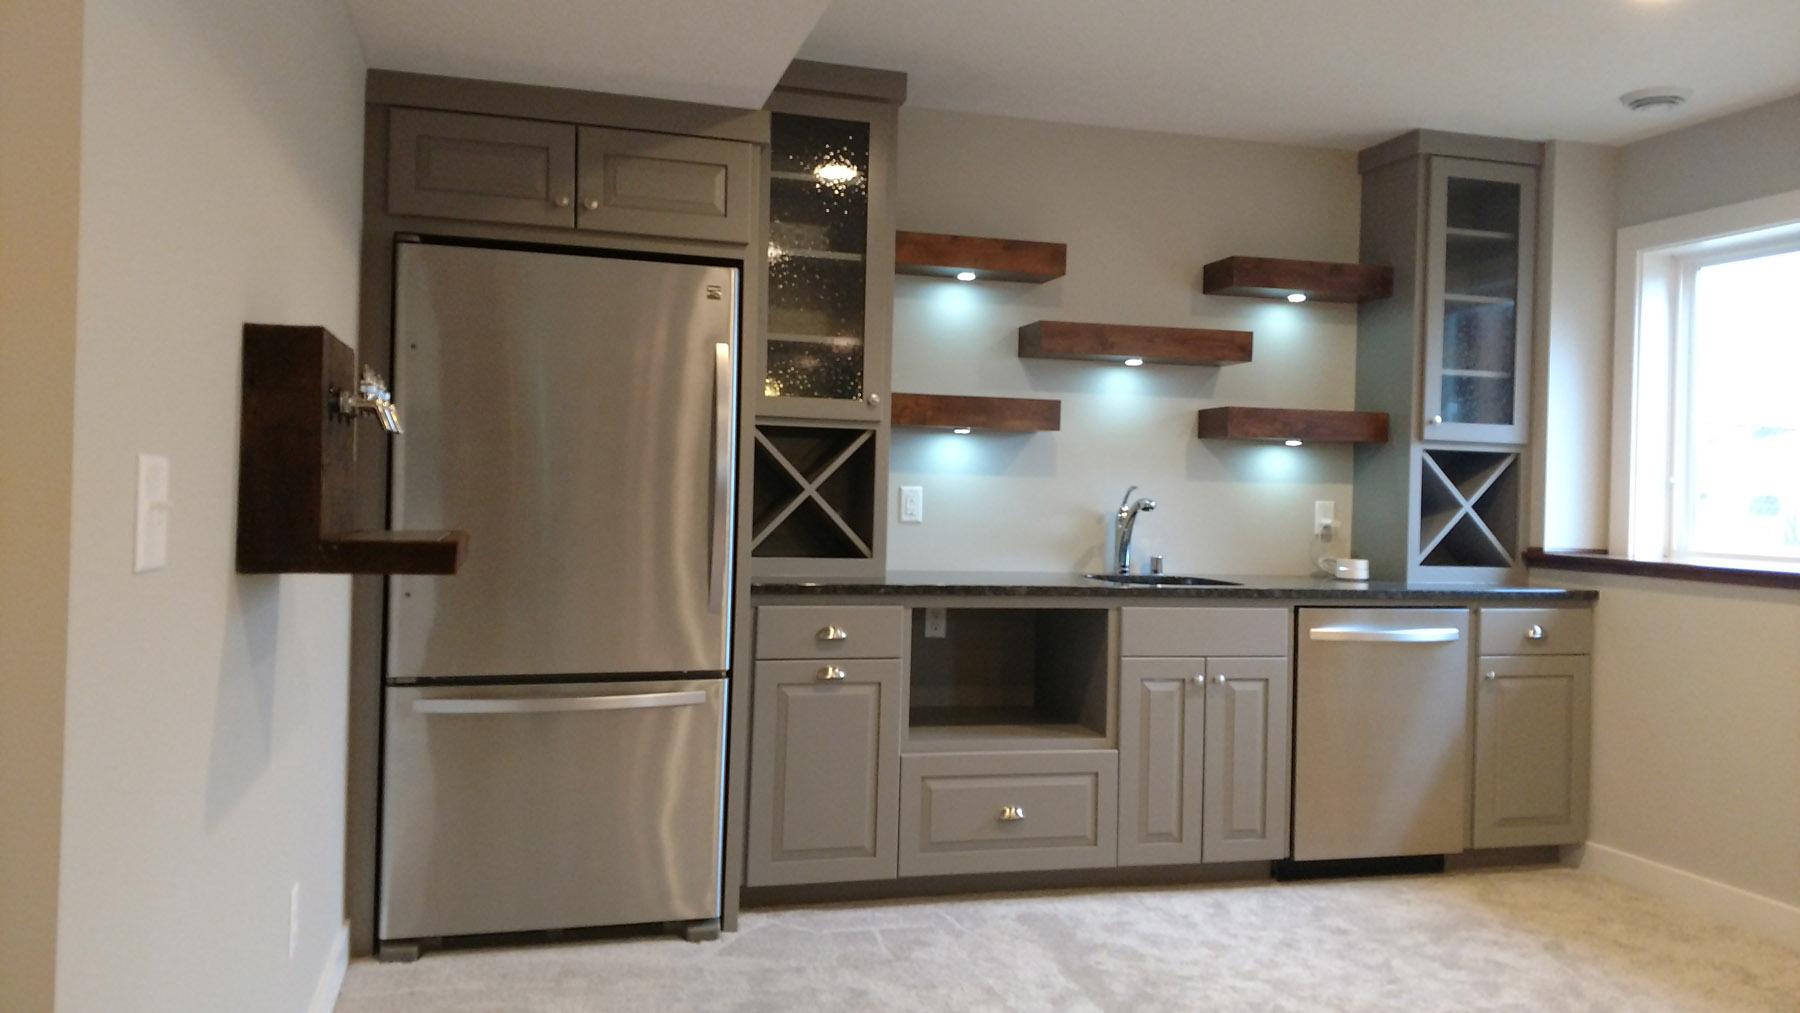 Wet bar w/ wine boxes & floating shelves